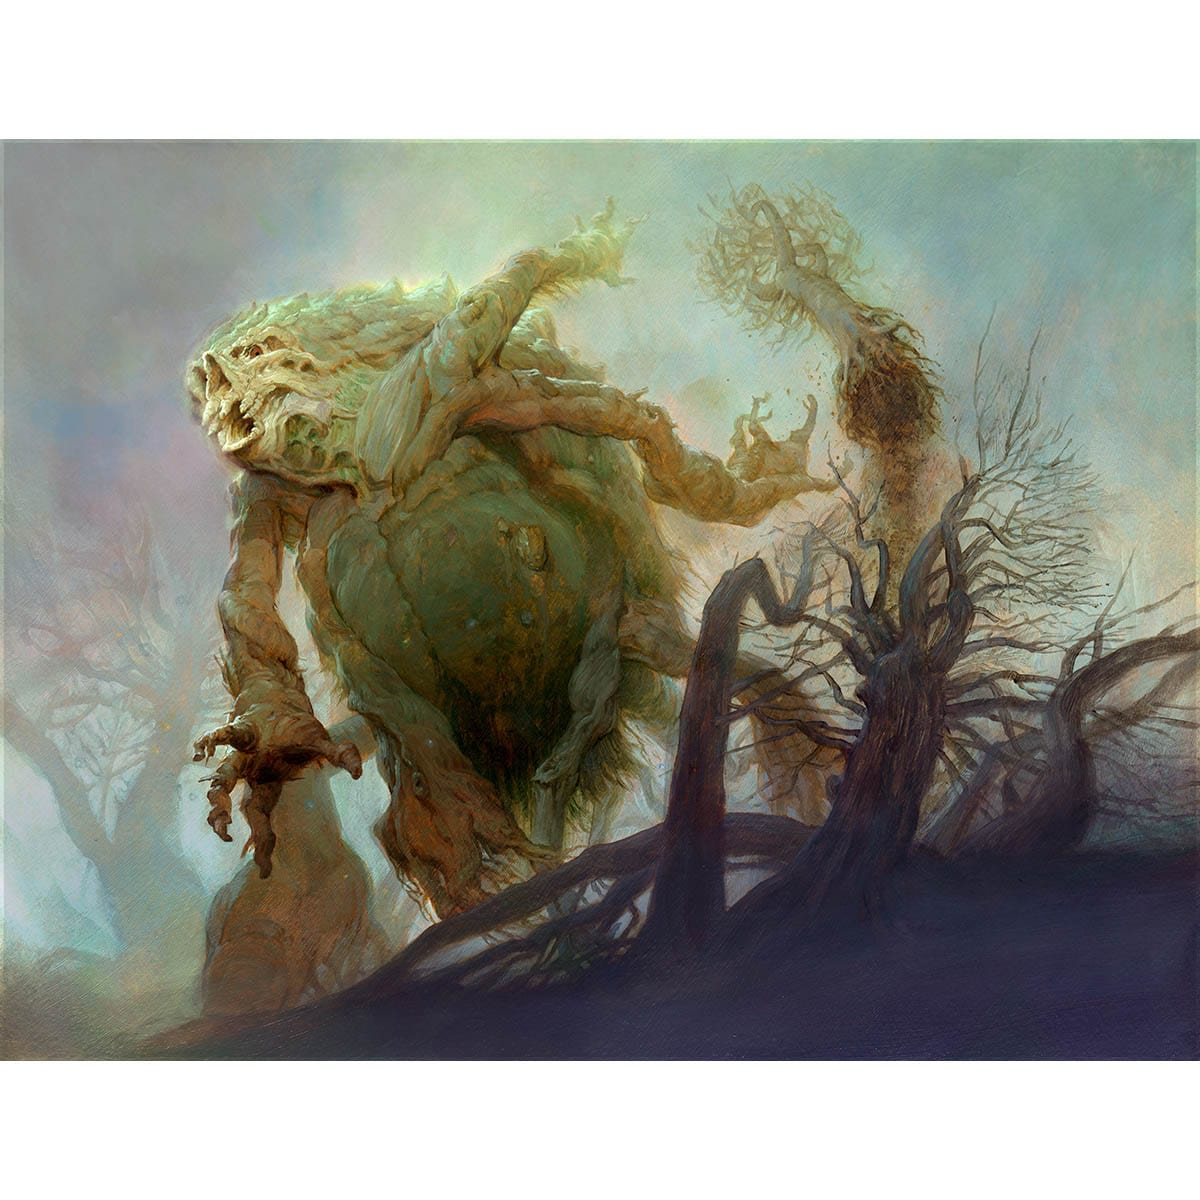 Woodfall Primus Print - Print - Original Magic Art - Accessories for Magic the Gathering and other card games